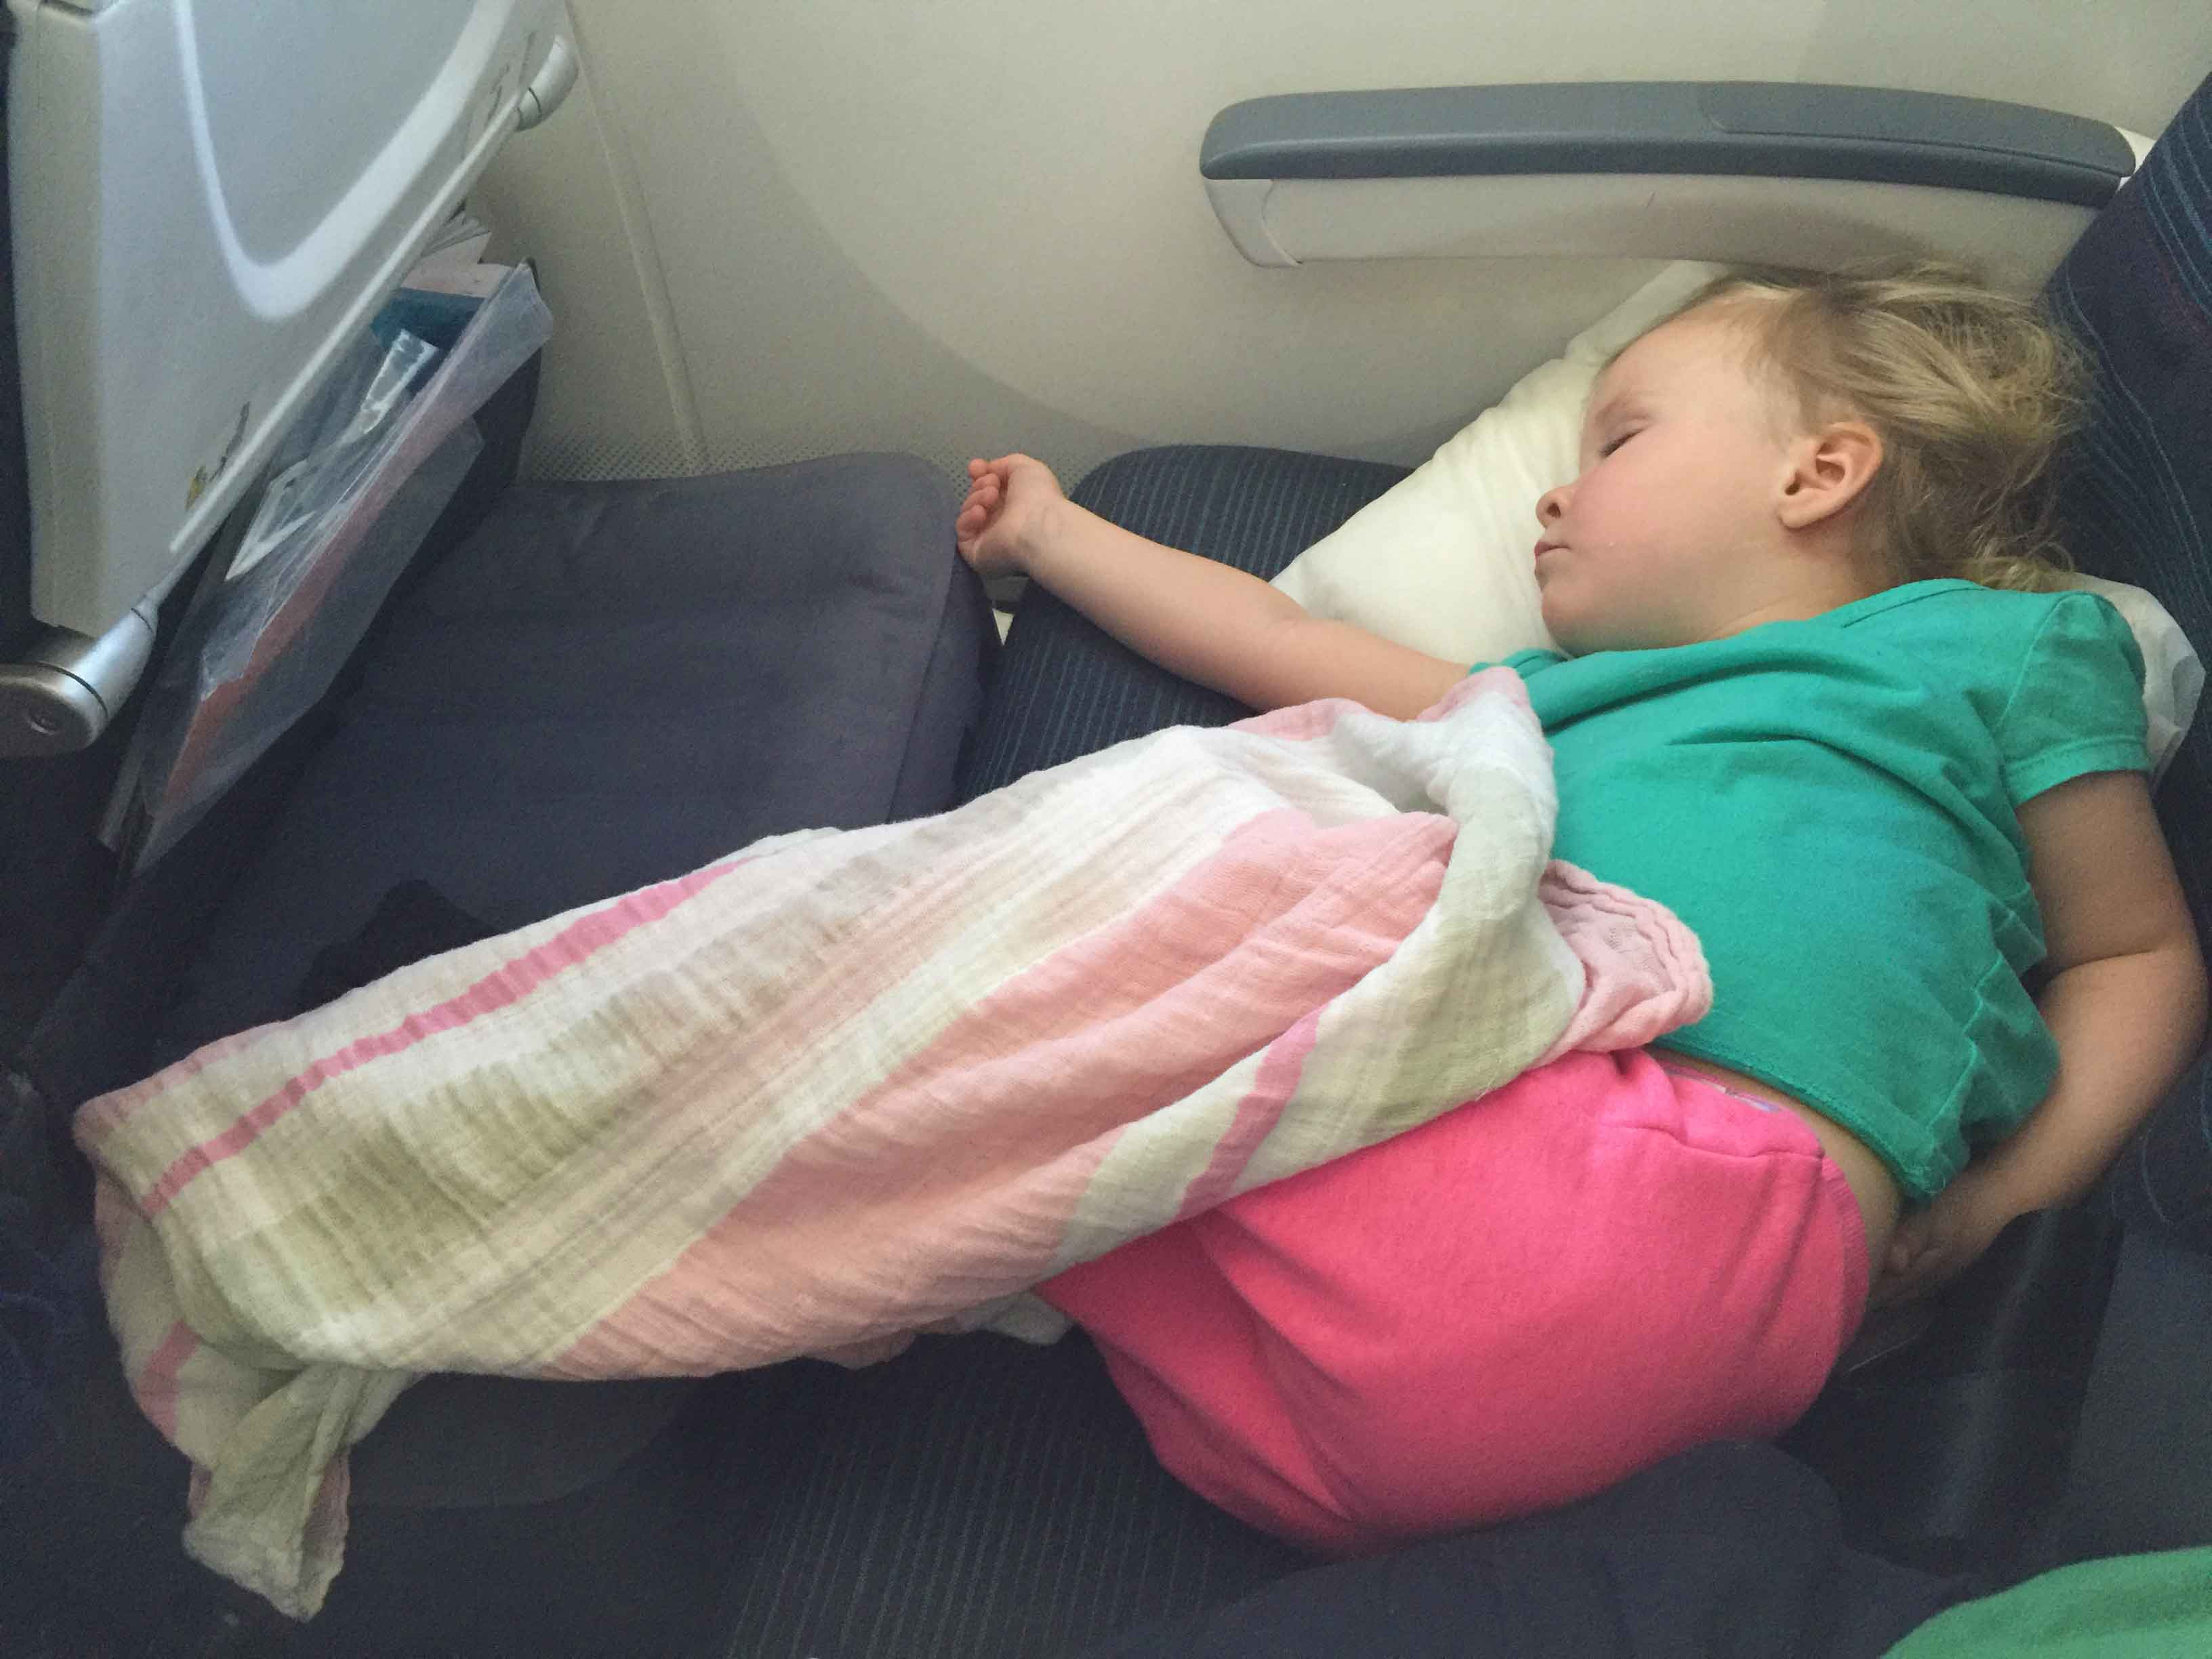 Fly Tot Inflatable Airplane Cushion Review - Baby Can Travel